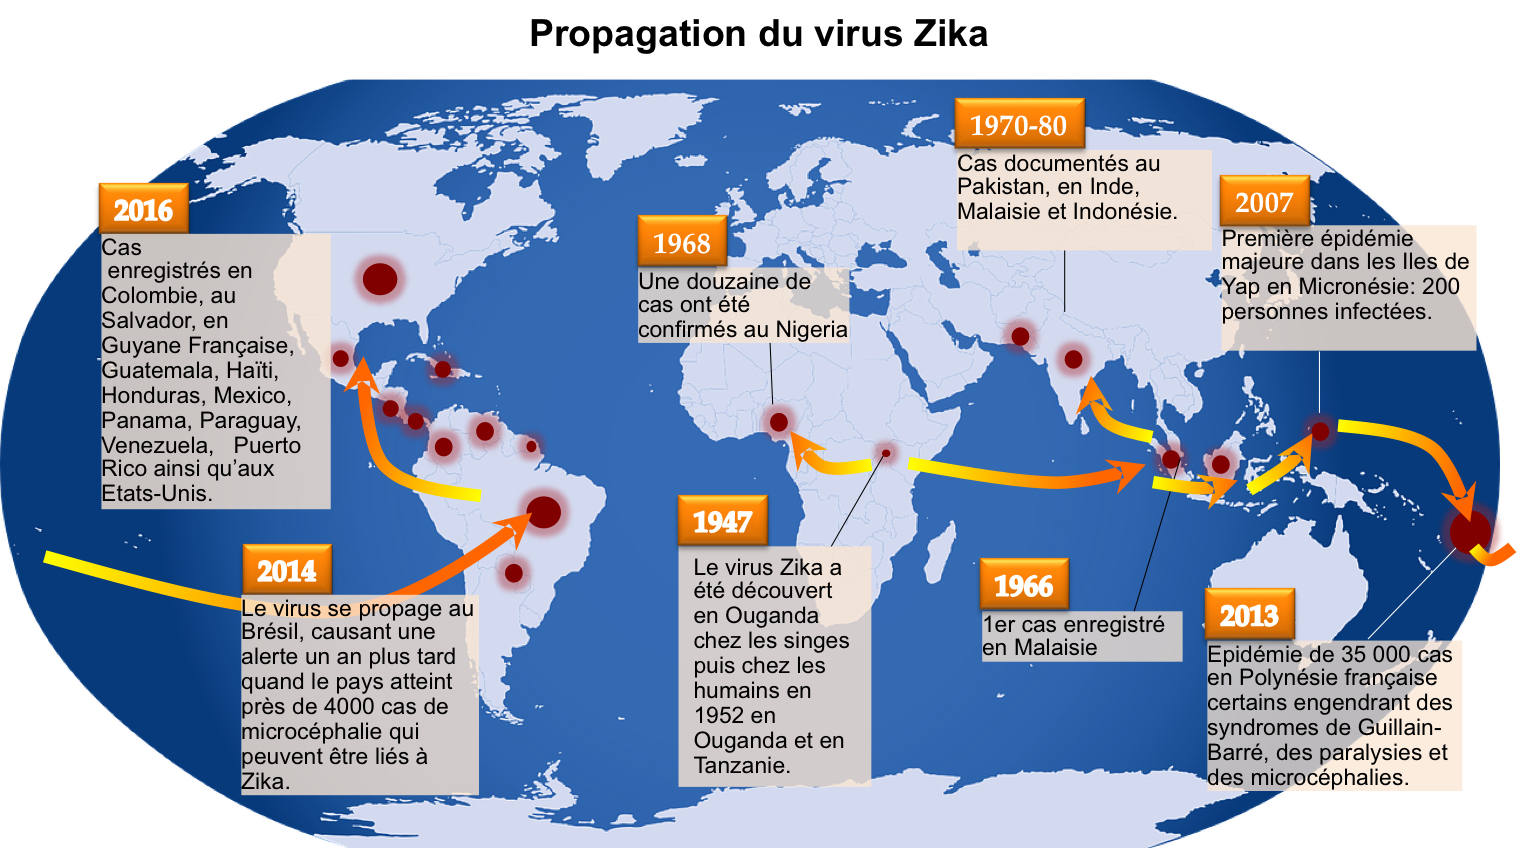 Figure 1 - Propagation du virus Zika - copie